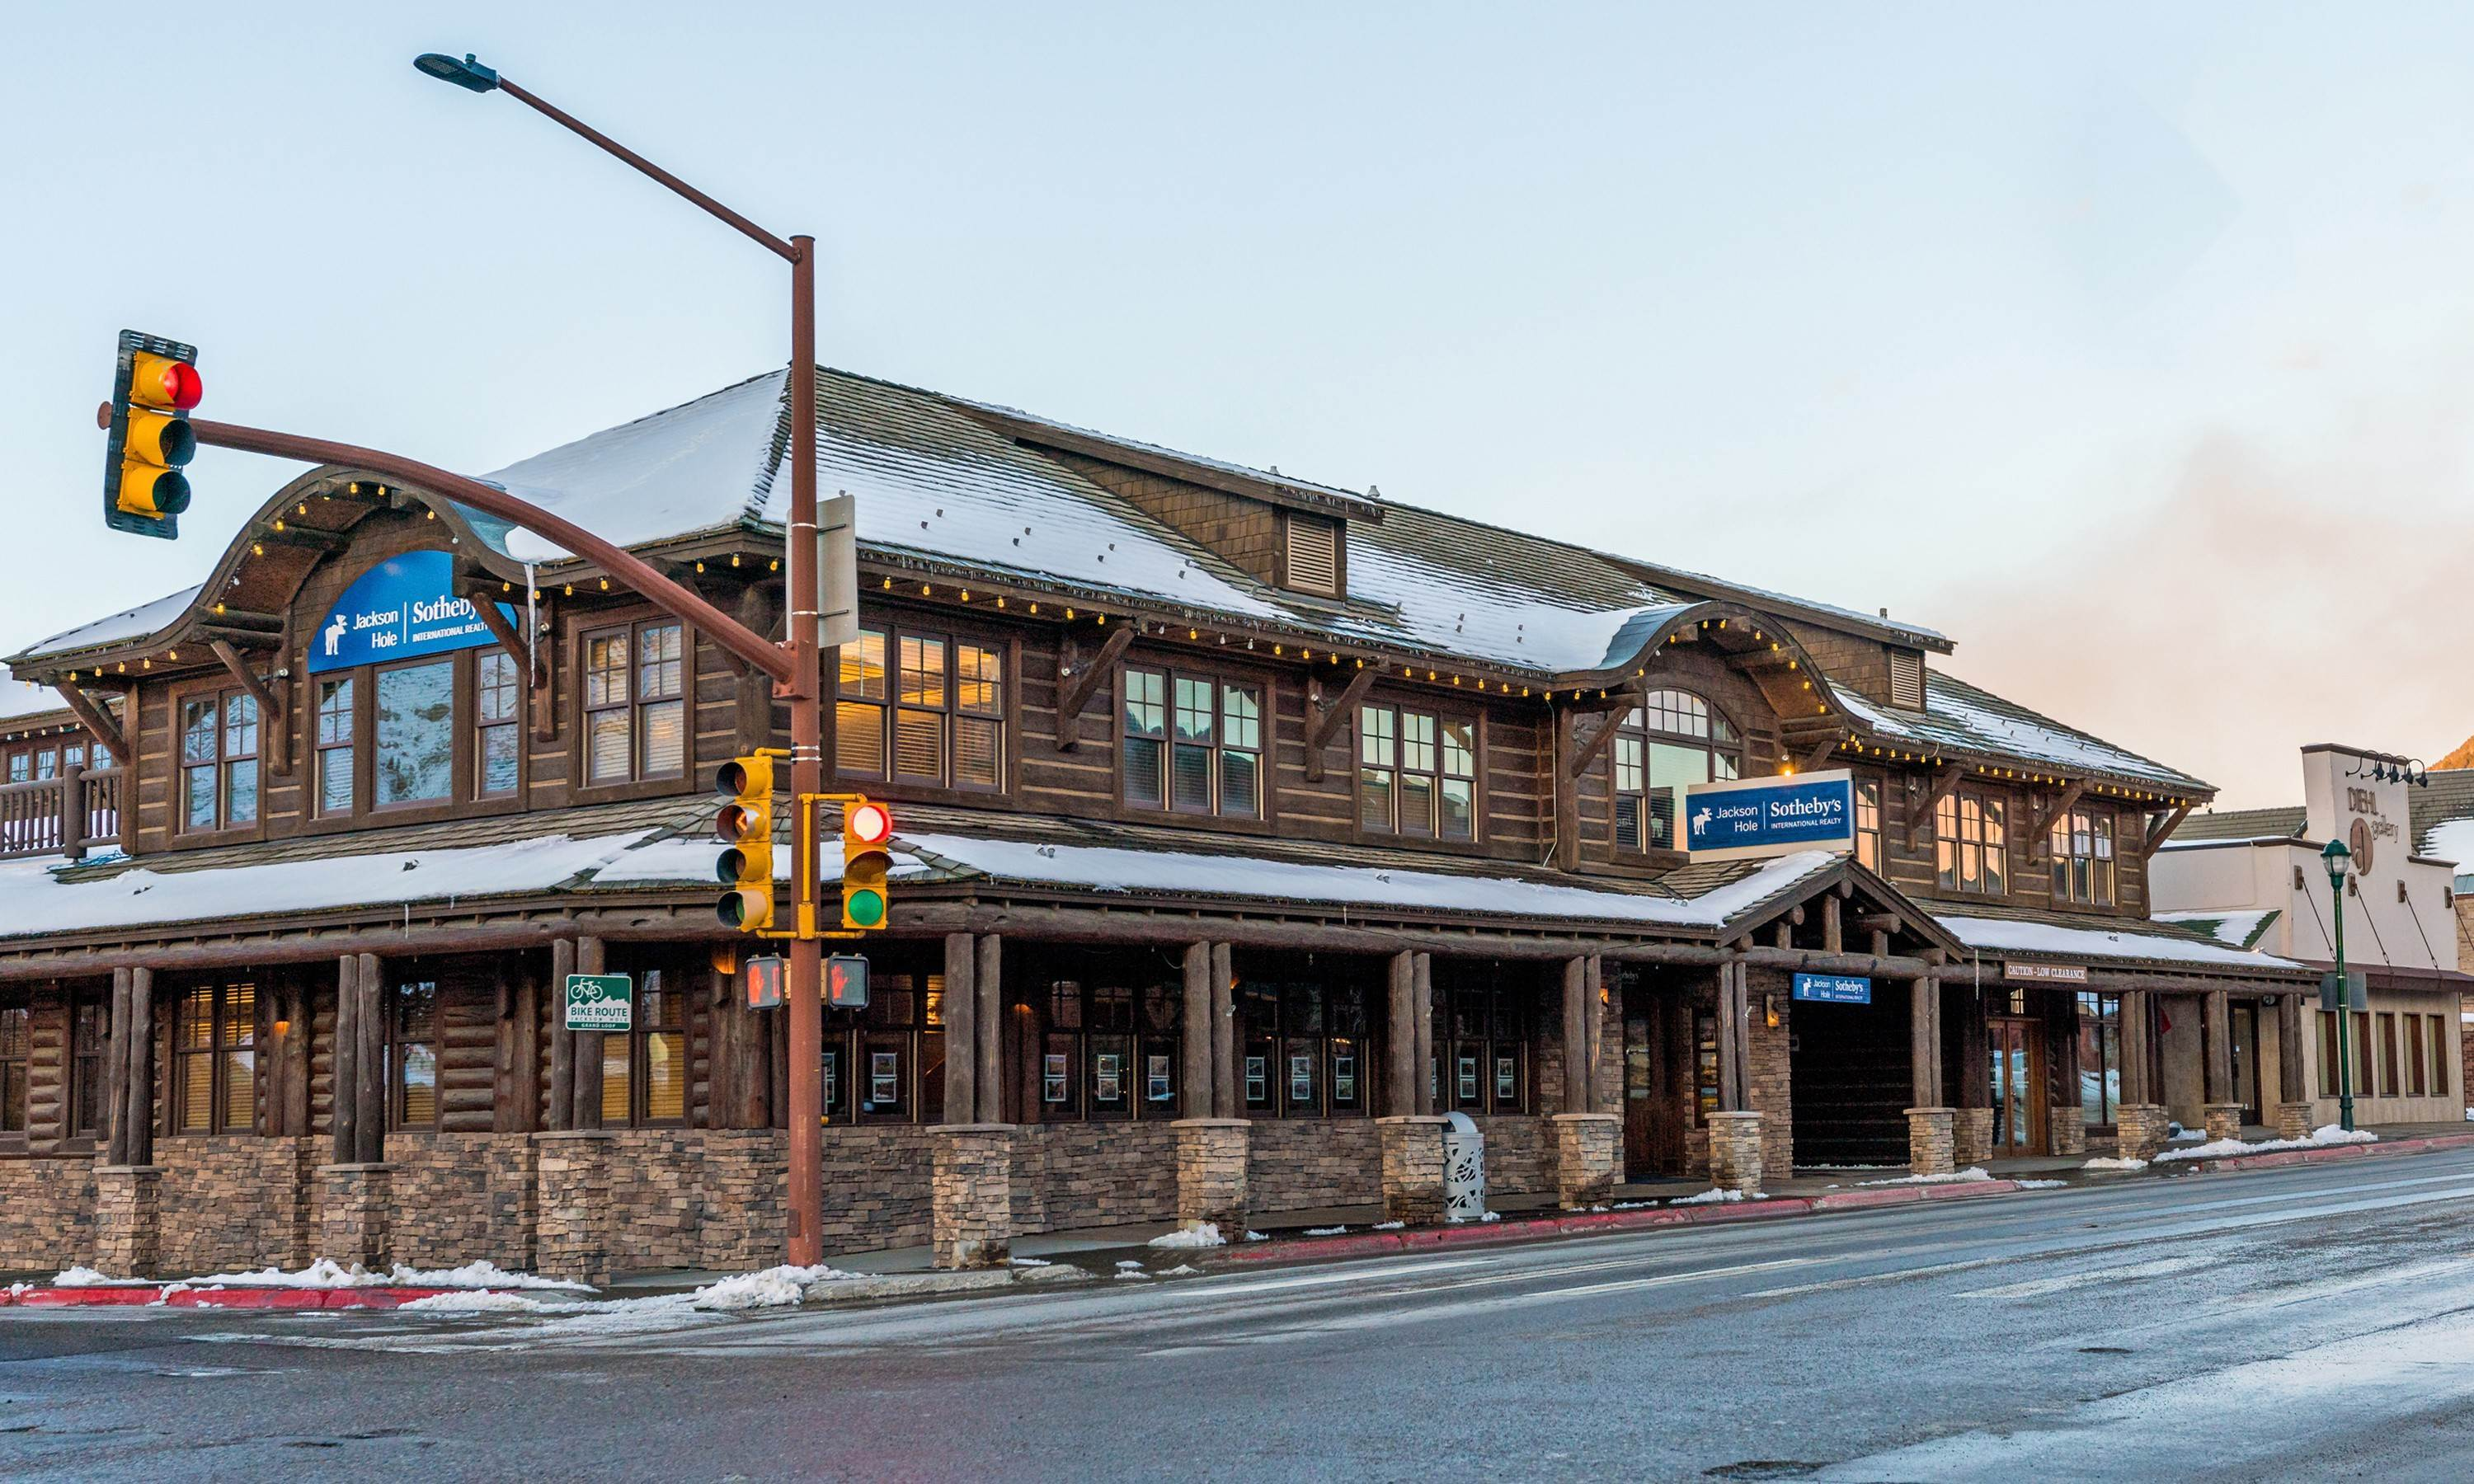 Jackson Hole Sotheby's International Realty